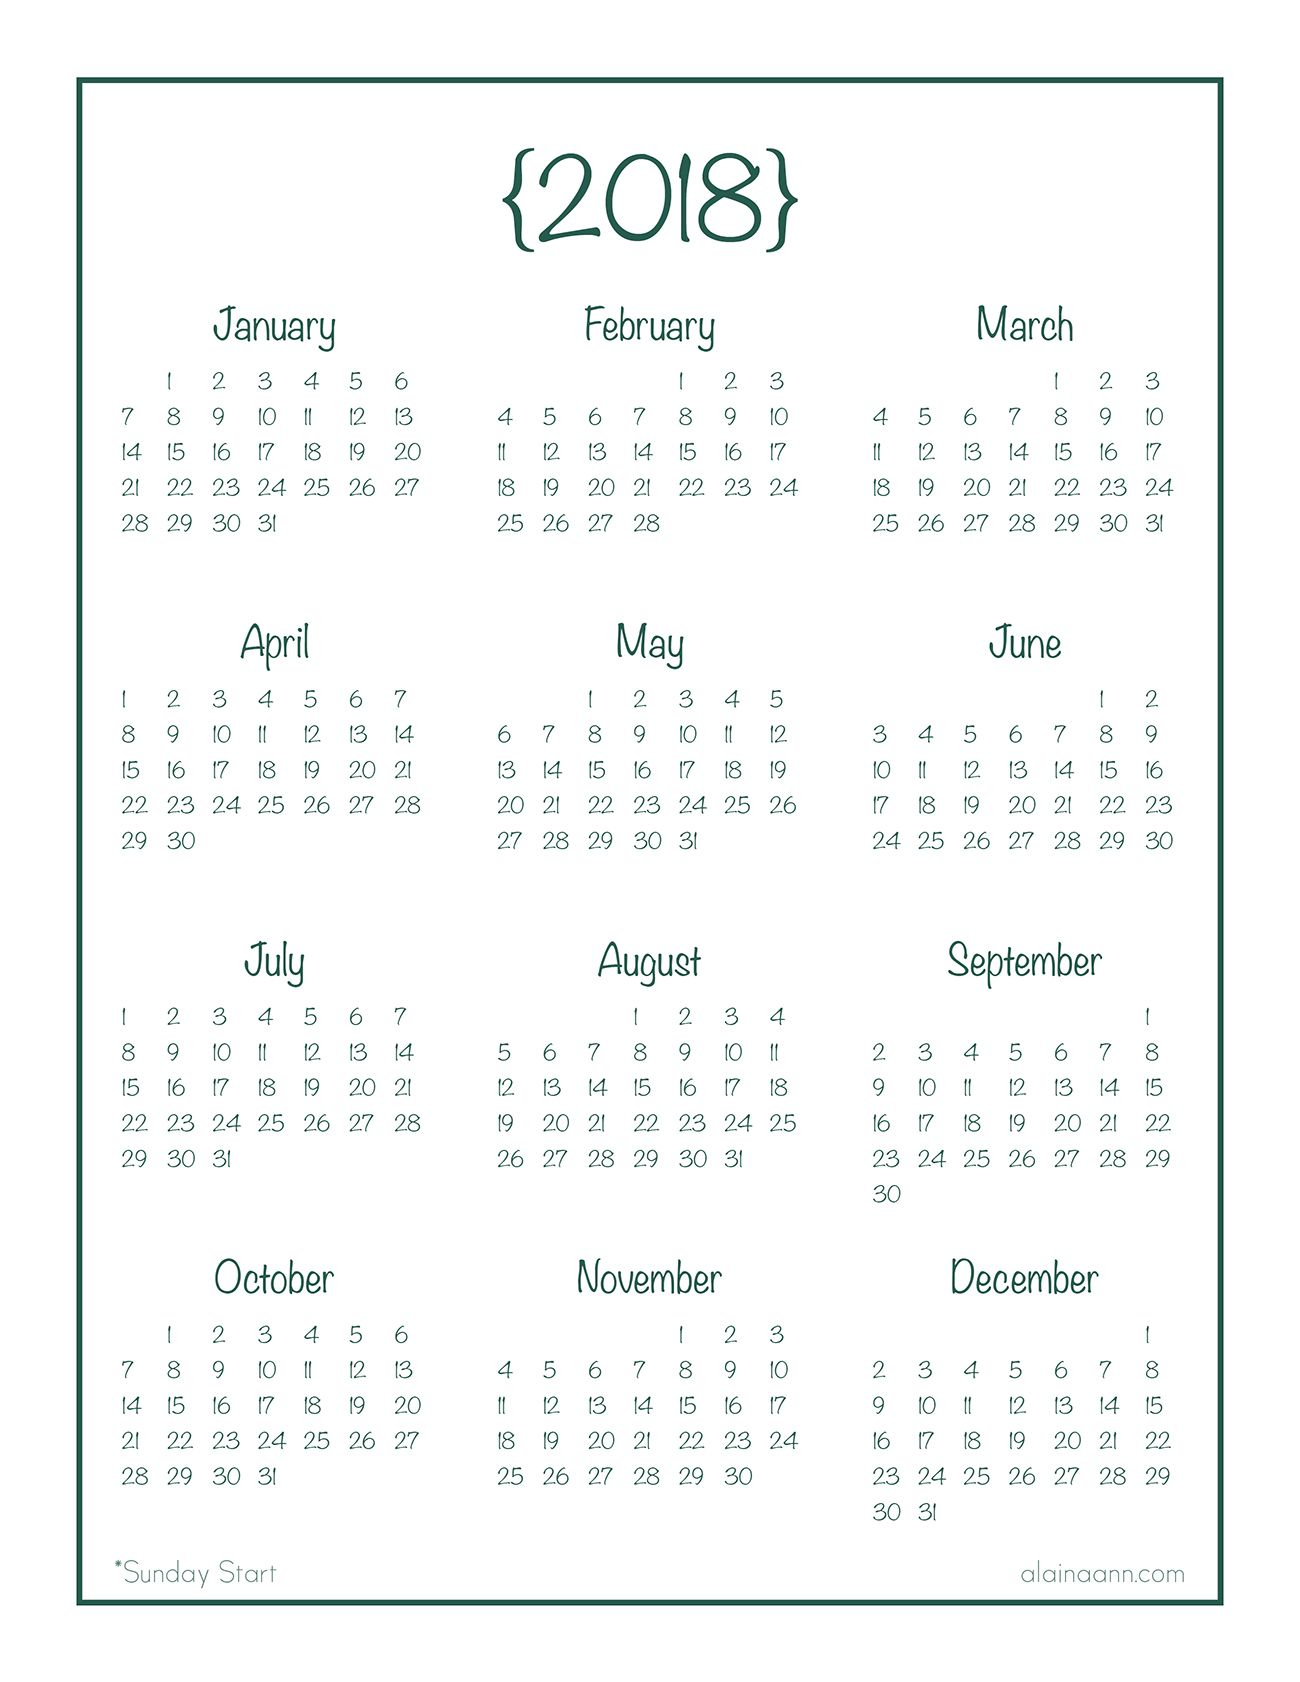 2018 Year-At-A-Glance Calendar {Free Printable} | Planner/journal within Year At A Glance Calendar Template